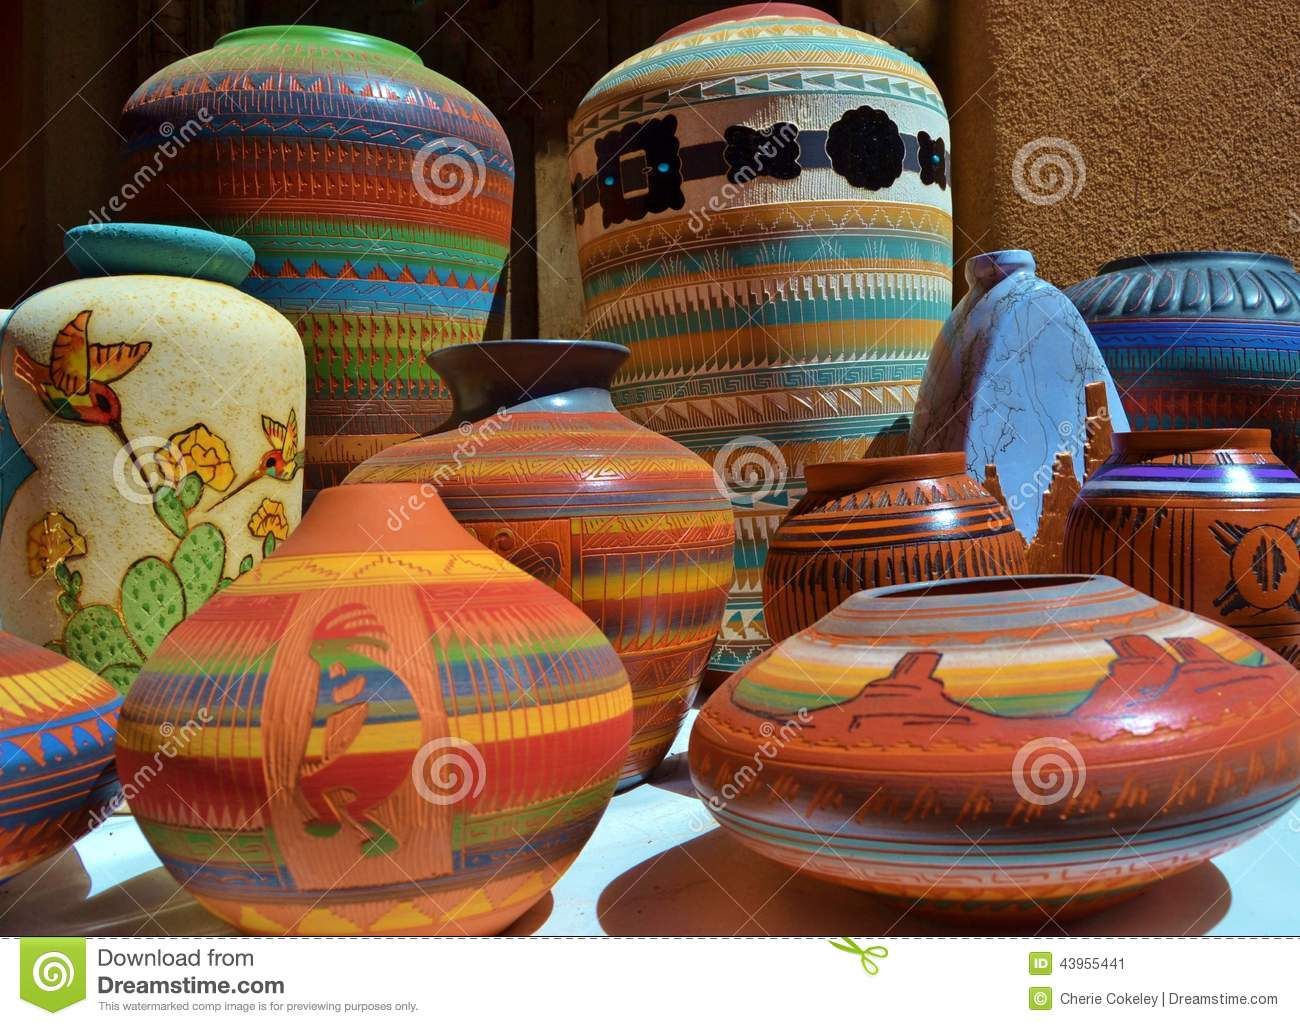 BRIGHTLY COLORED SOUTHWESTERN CERAMIC CLAY POTTERY